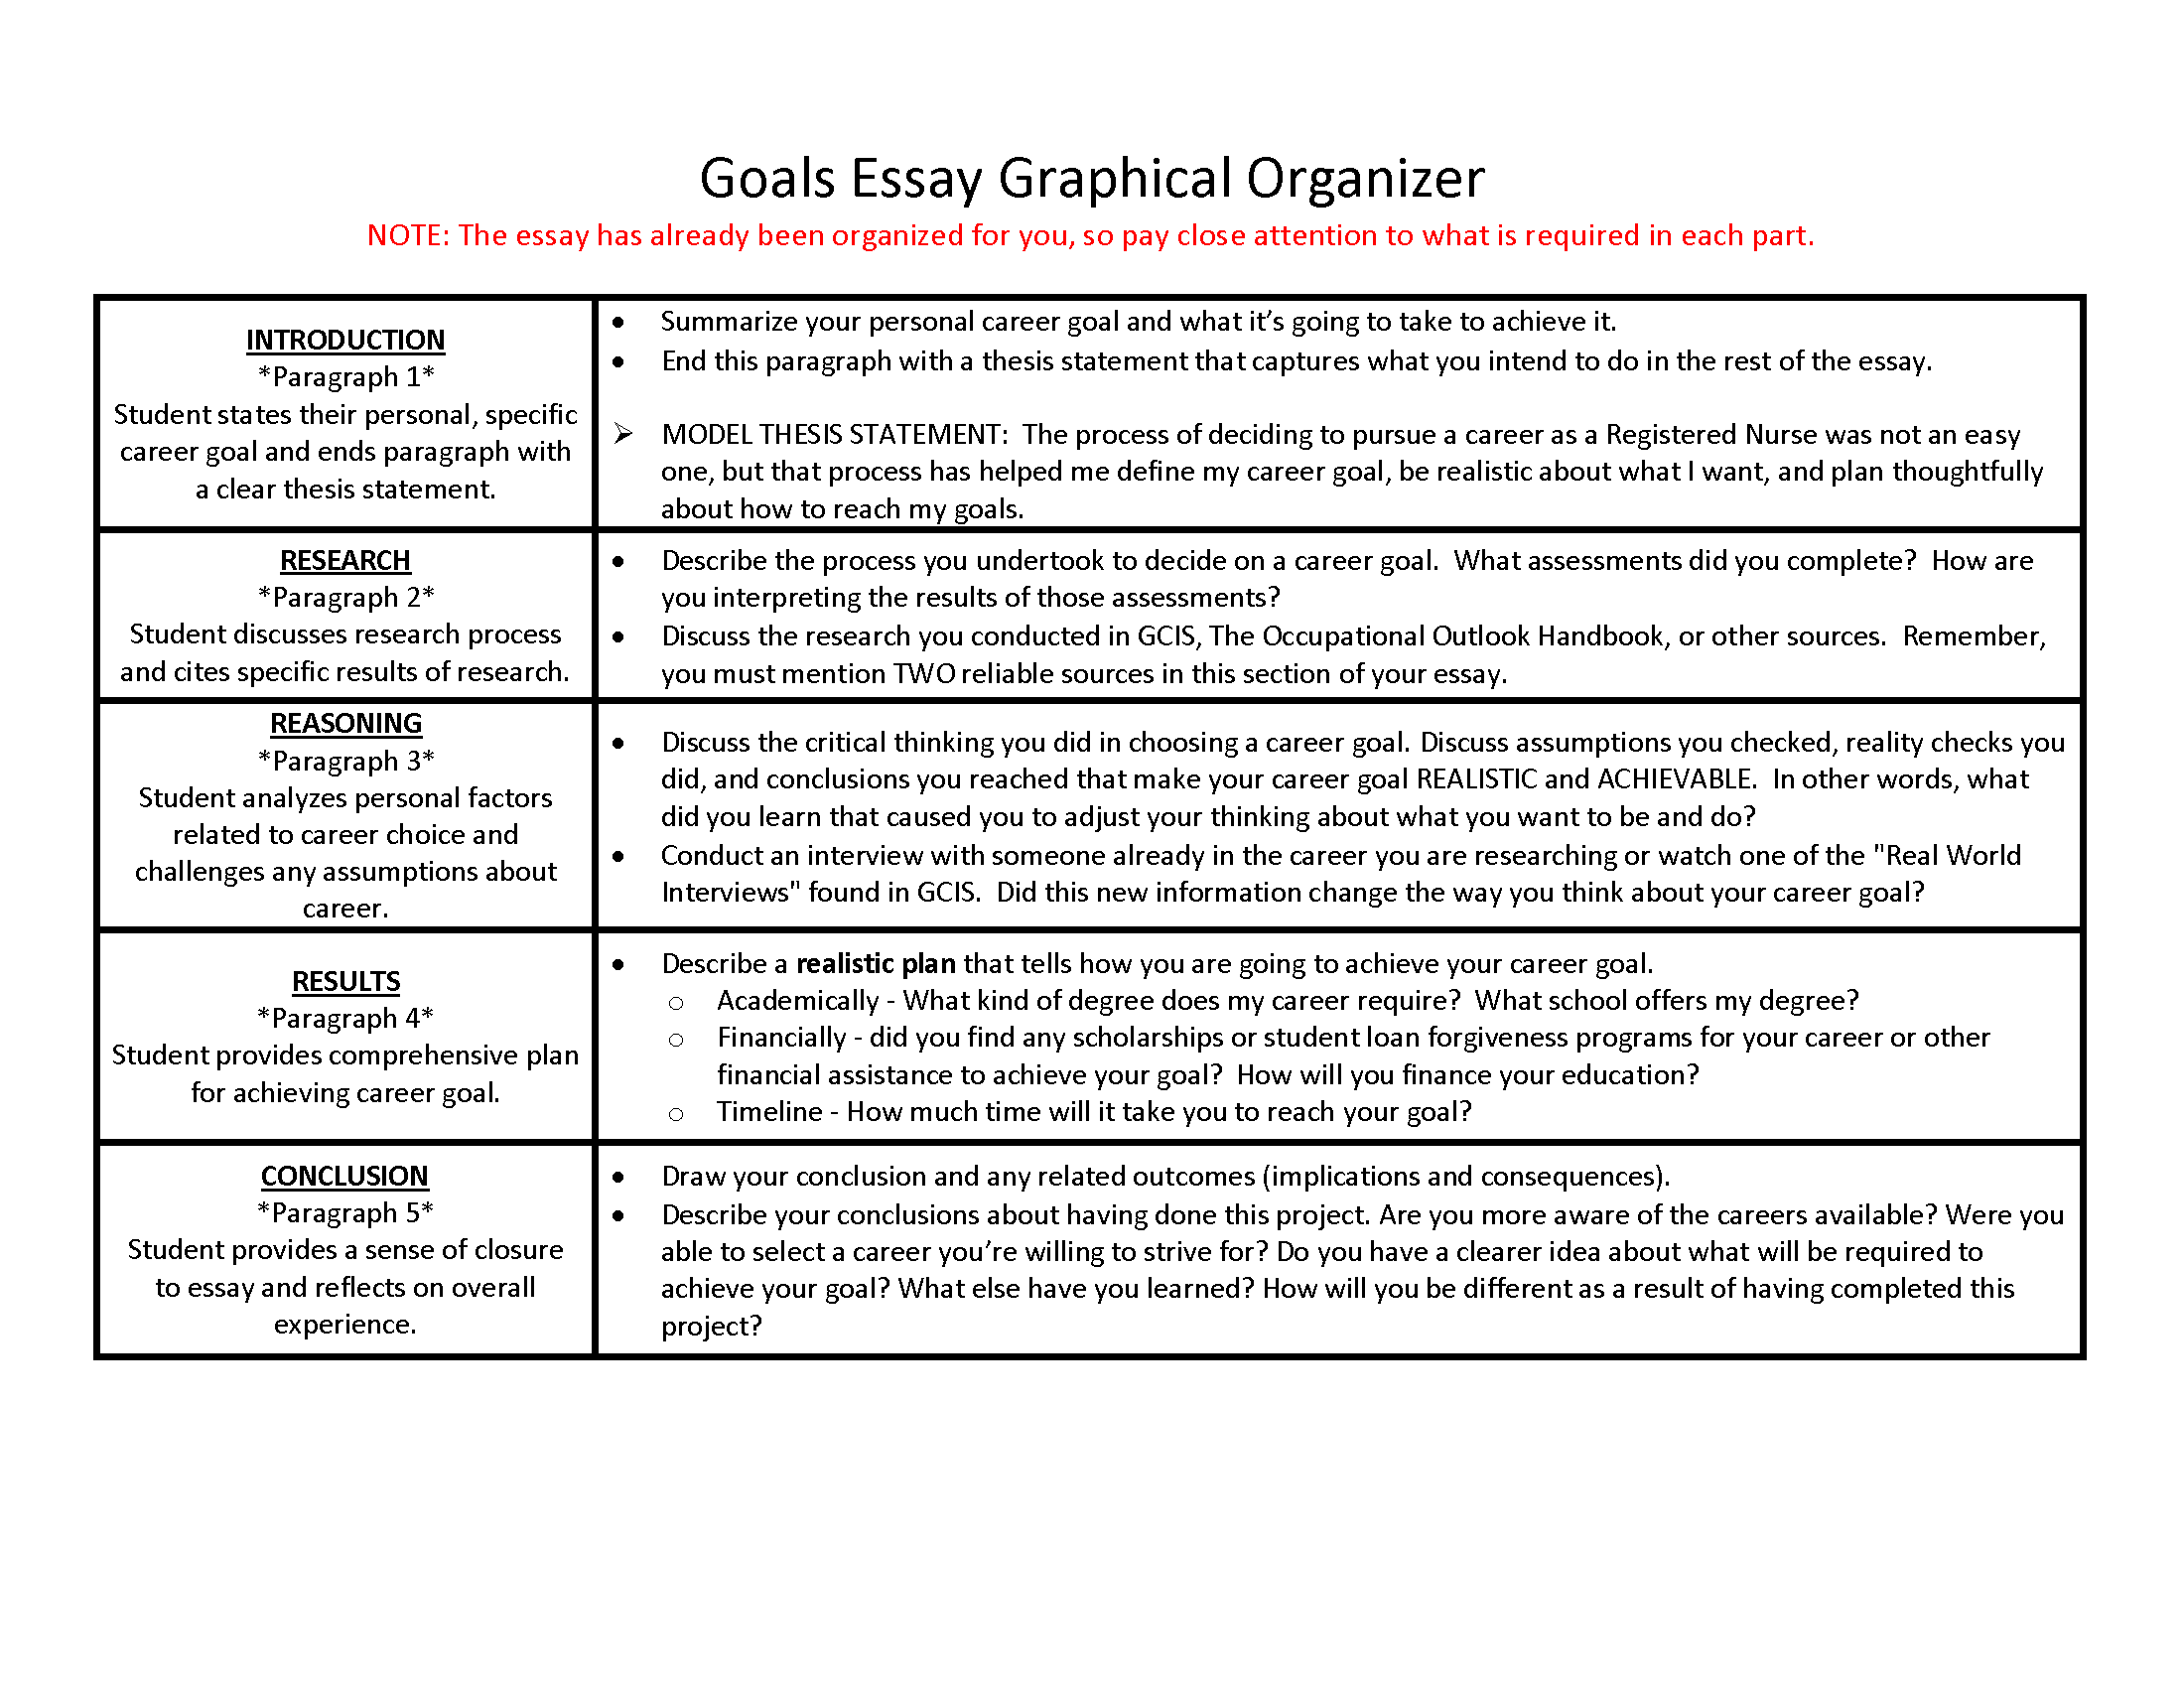 007 Lochhaas Fig027 Educational And Career Goals Essay Awesome Plans For Business On Future Full